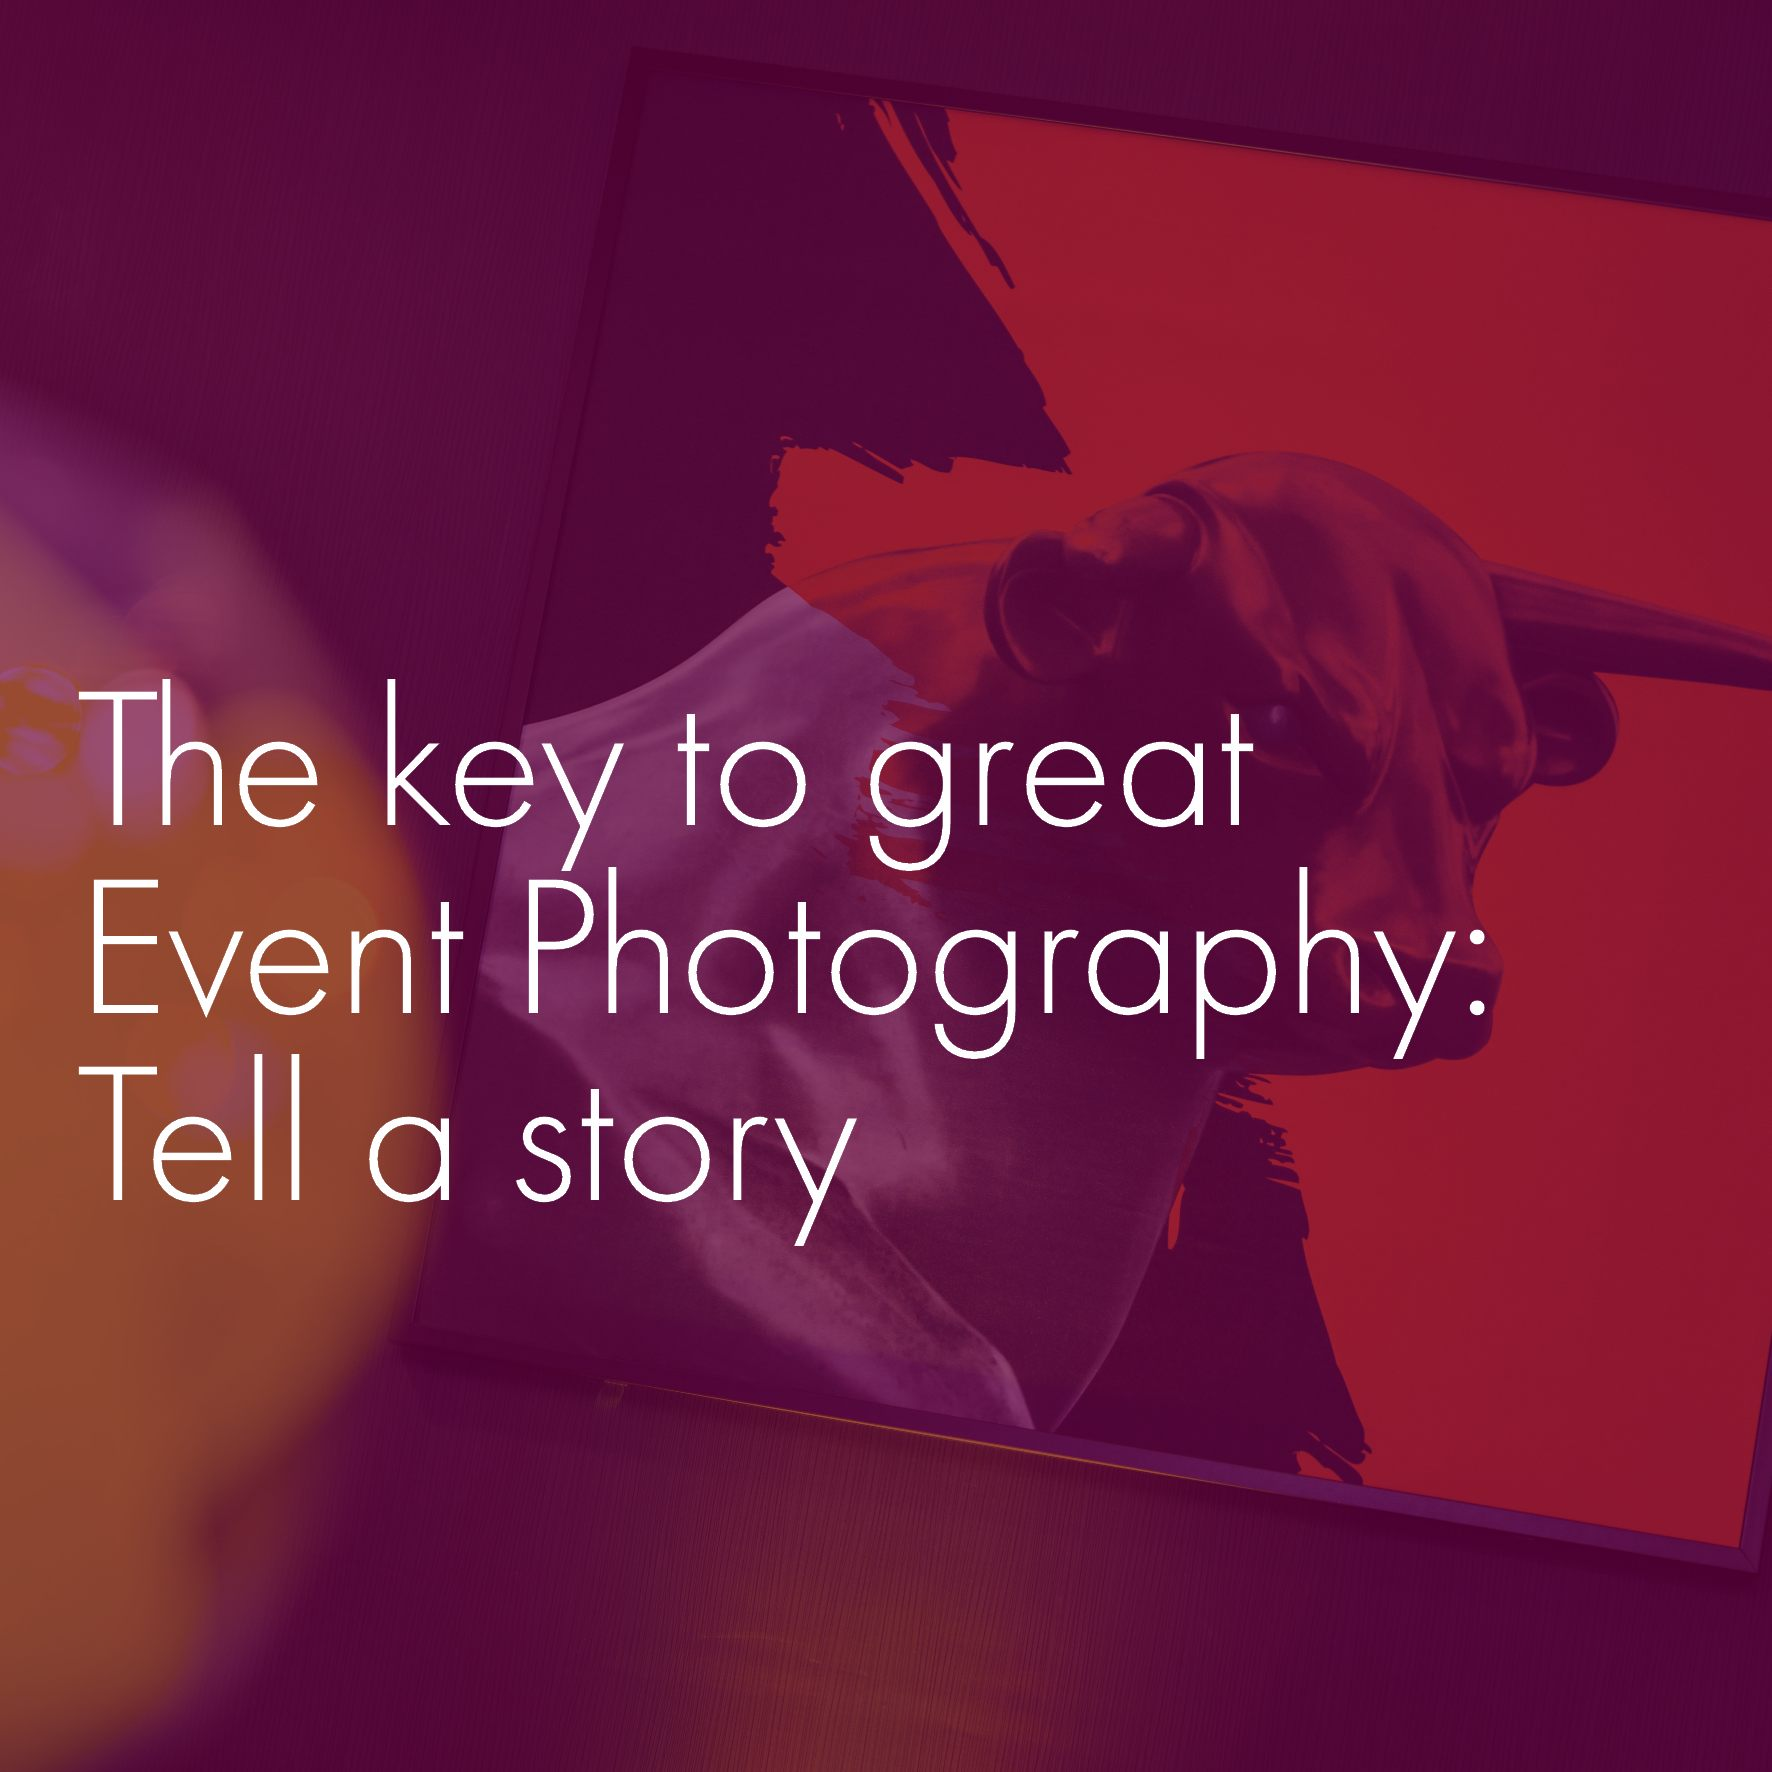 The key to great Event Photography: Tell a story